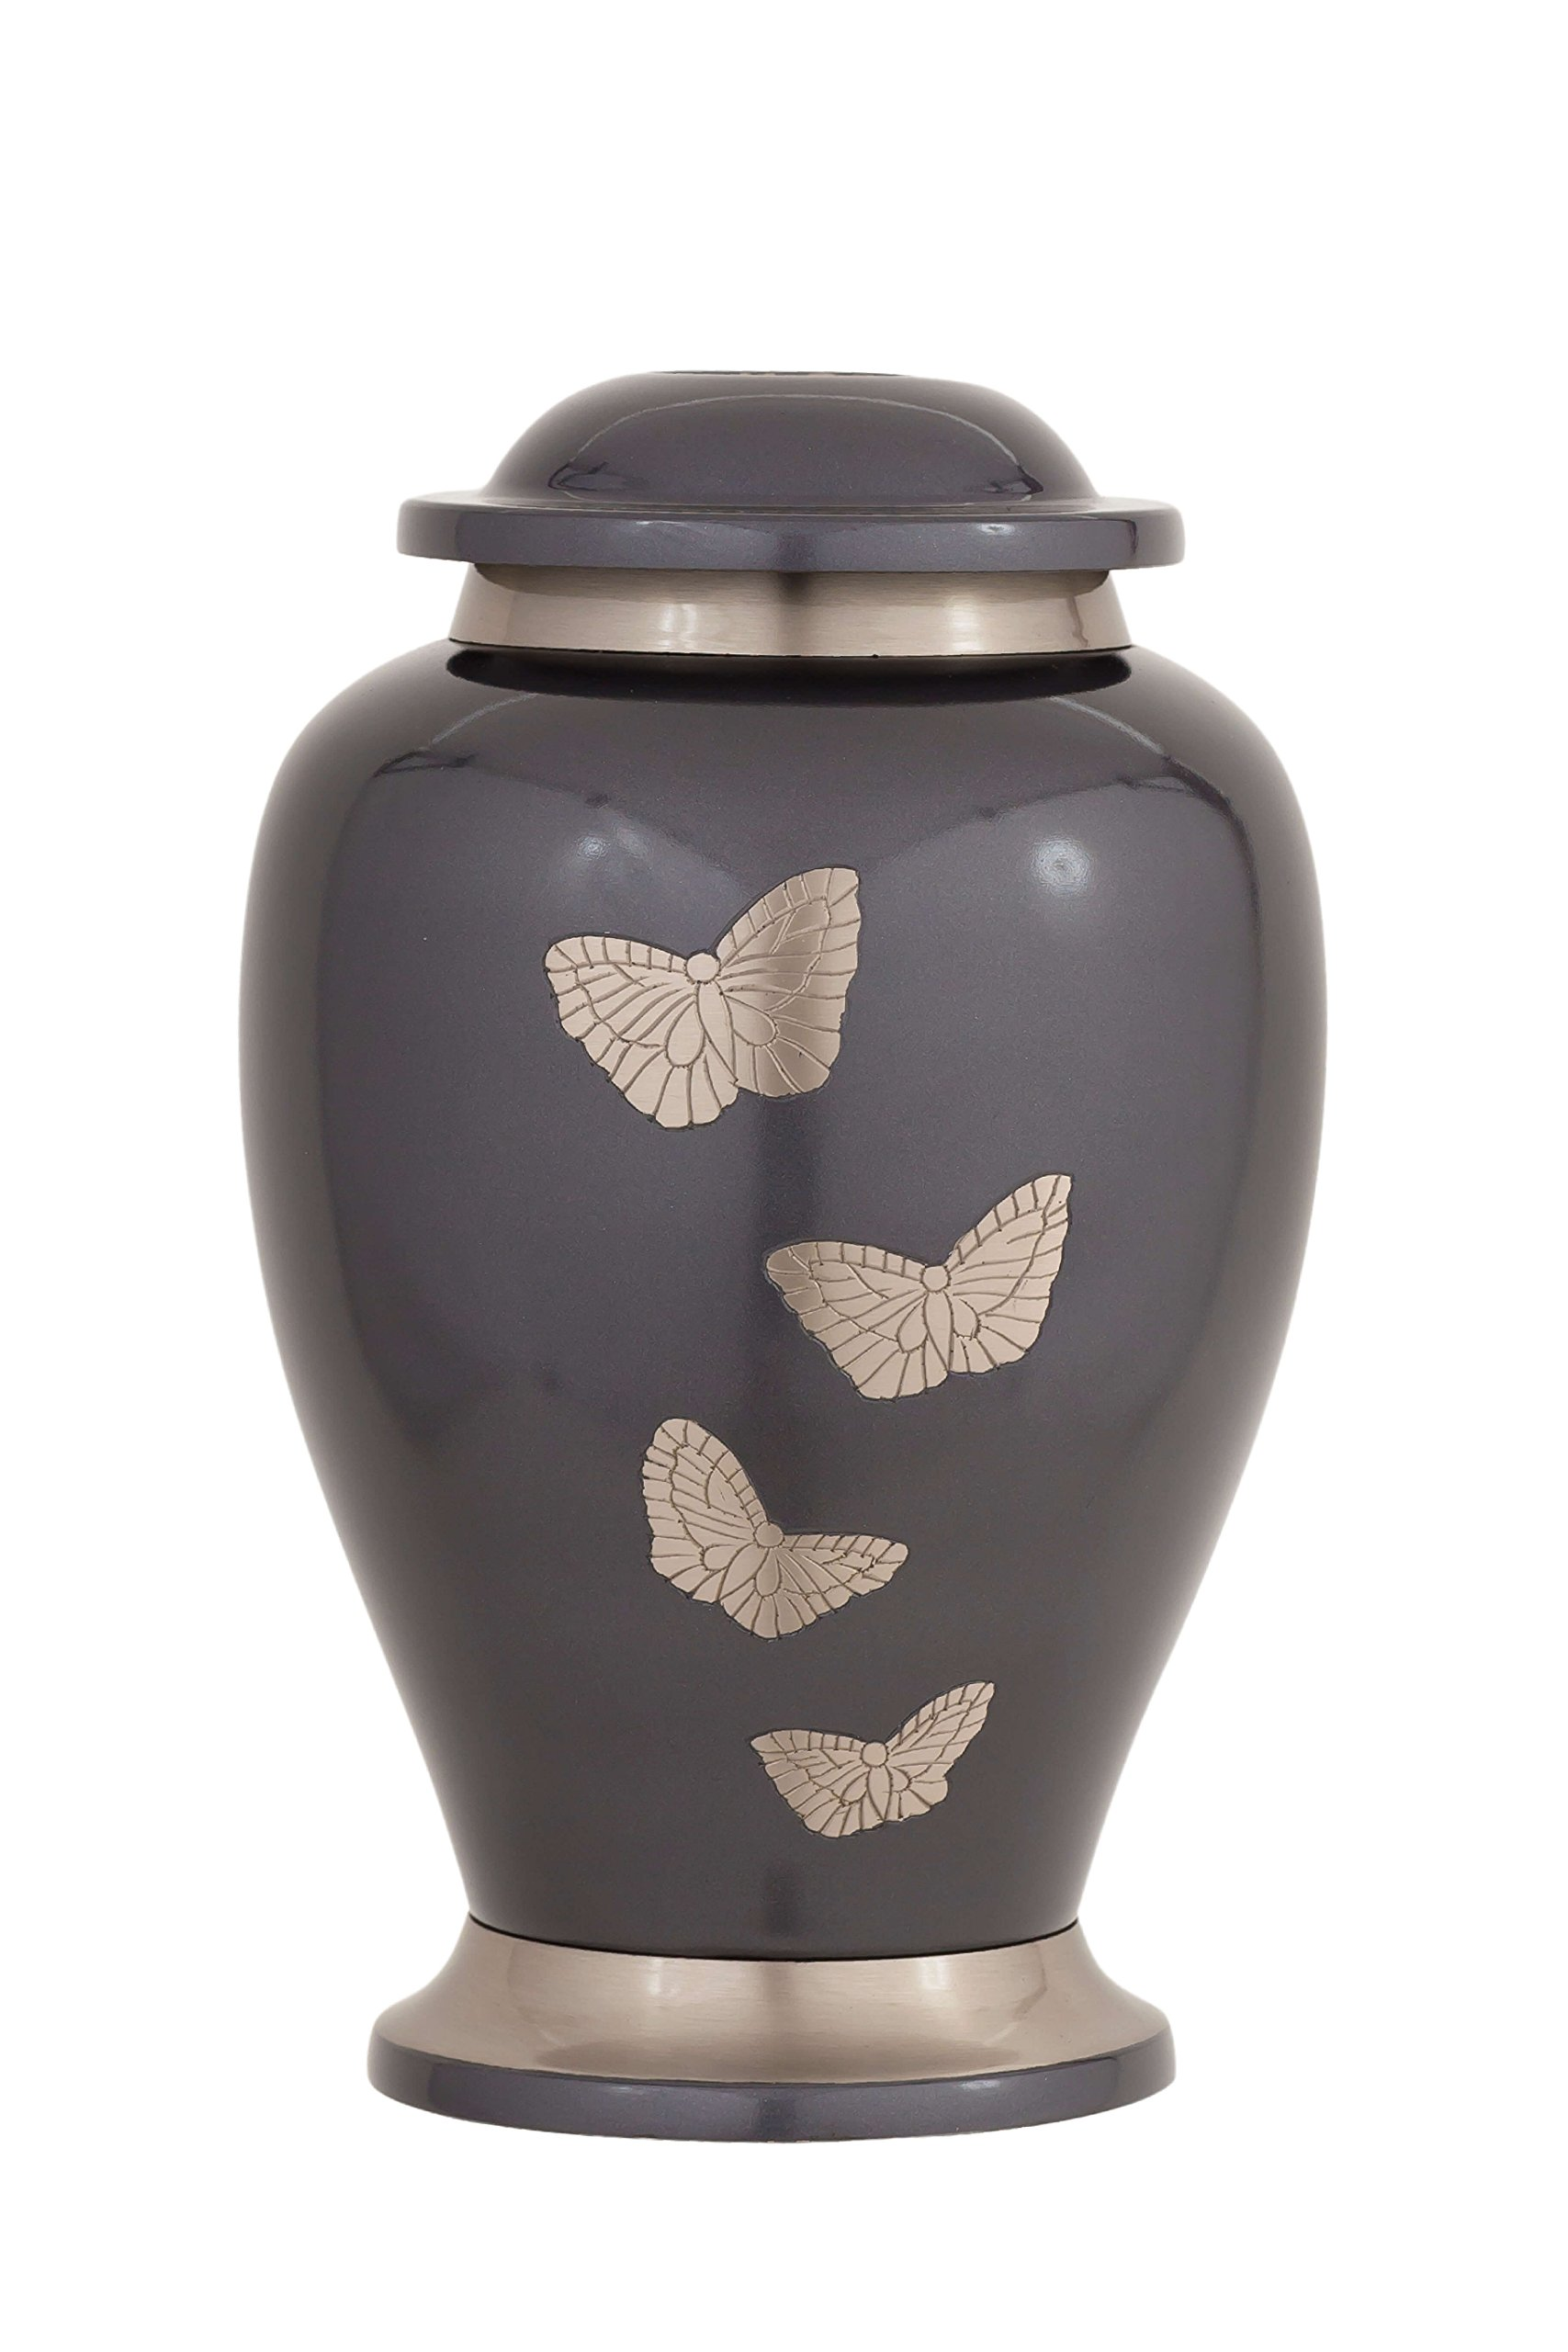 Enshrined Memorials Cremation Urn for Ashes - Apollo Series Affordable Solid Brass Metal Quality Handcrafted for Human Funeral Burial Large 10 inch & Keepsake Bundle, Gray with Butterflies